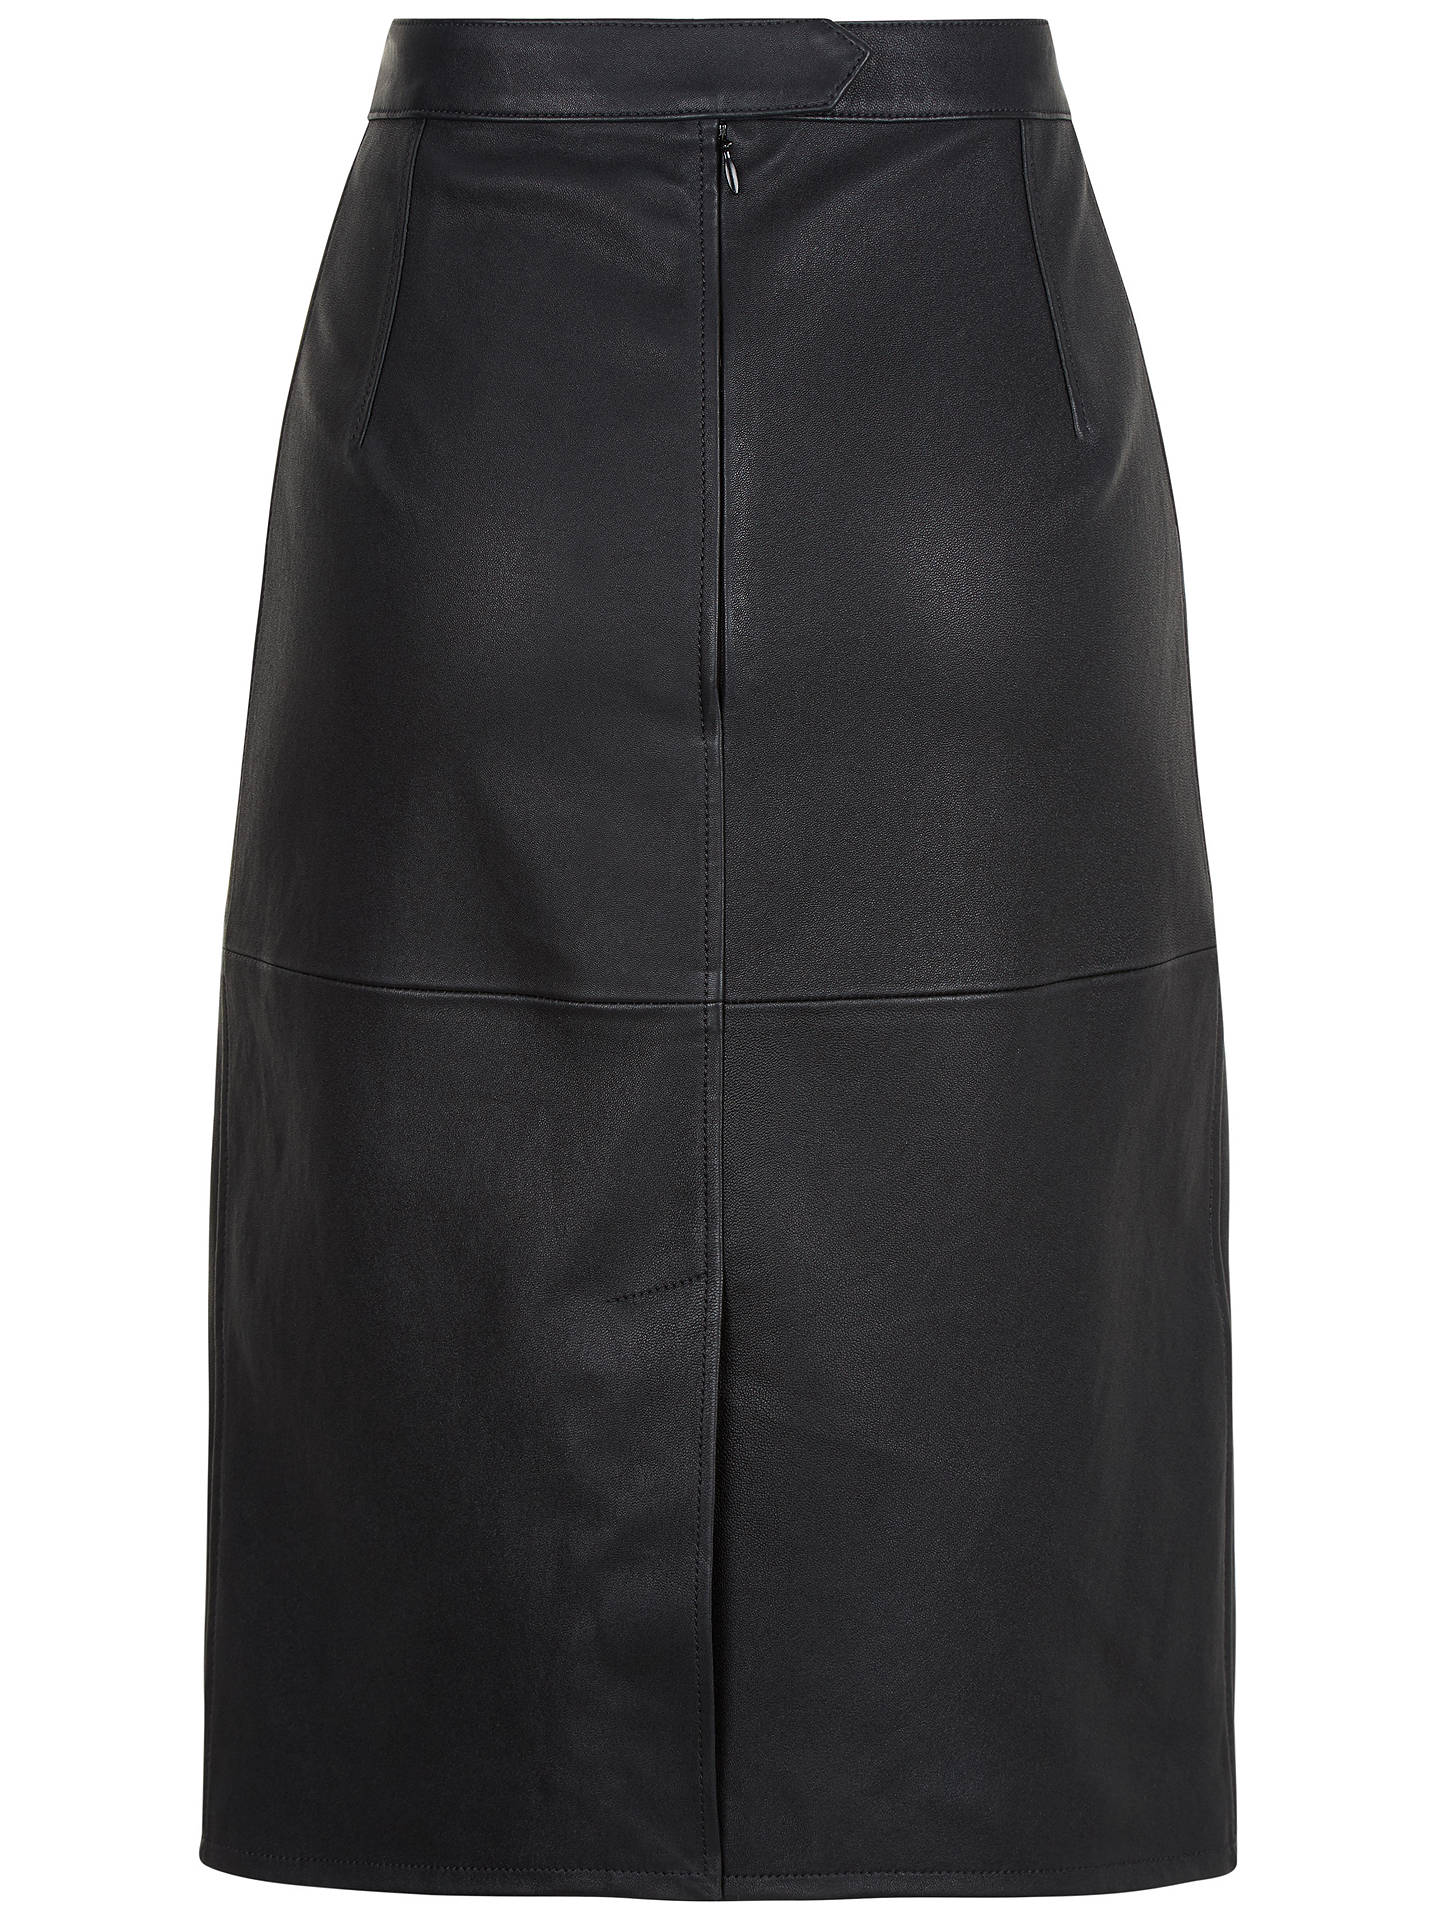 BuyJaeger Stretch Leather Skirt, Black, 6 Online at johnlewis.com